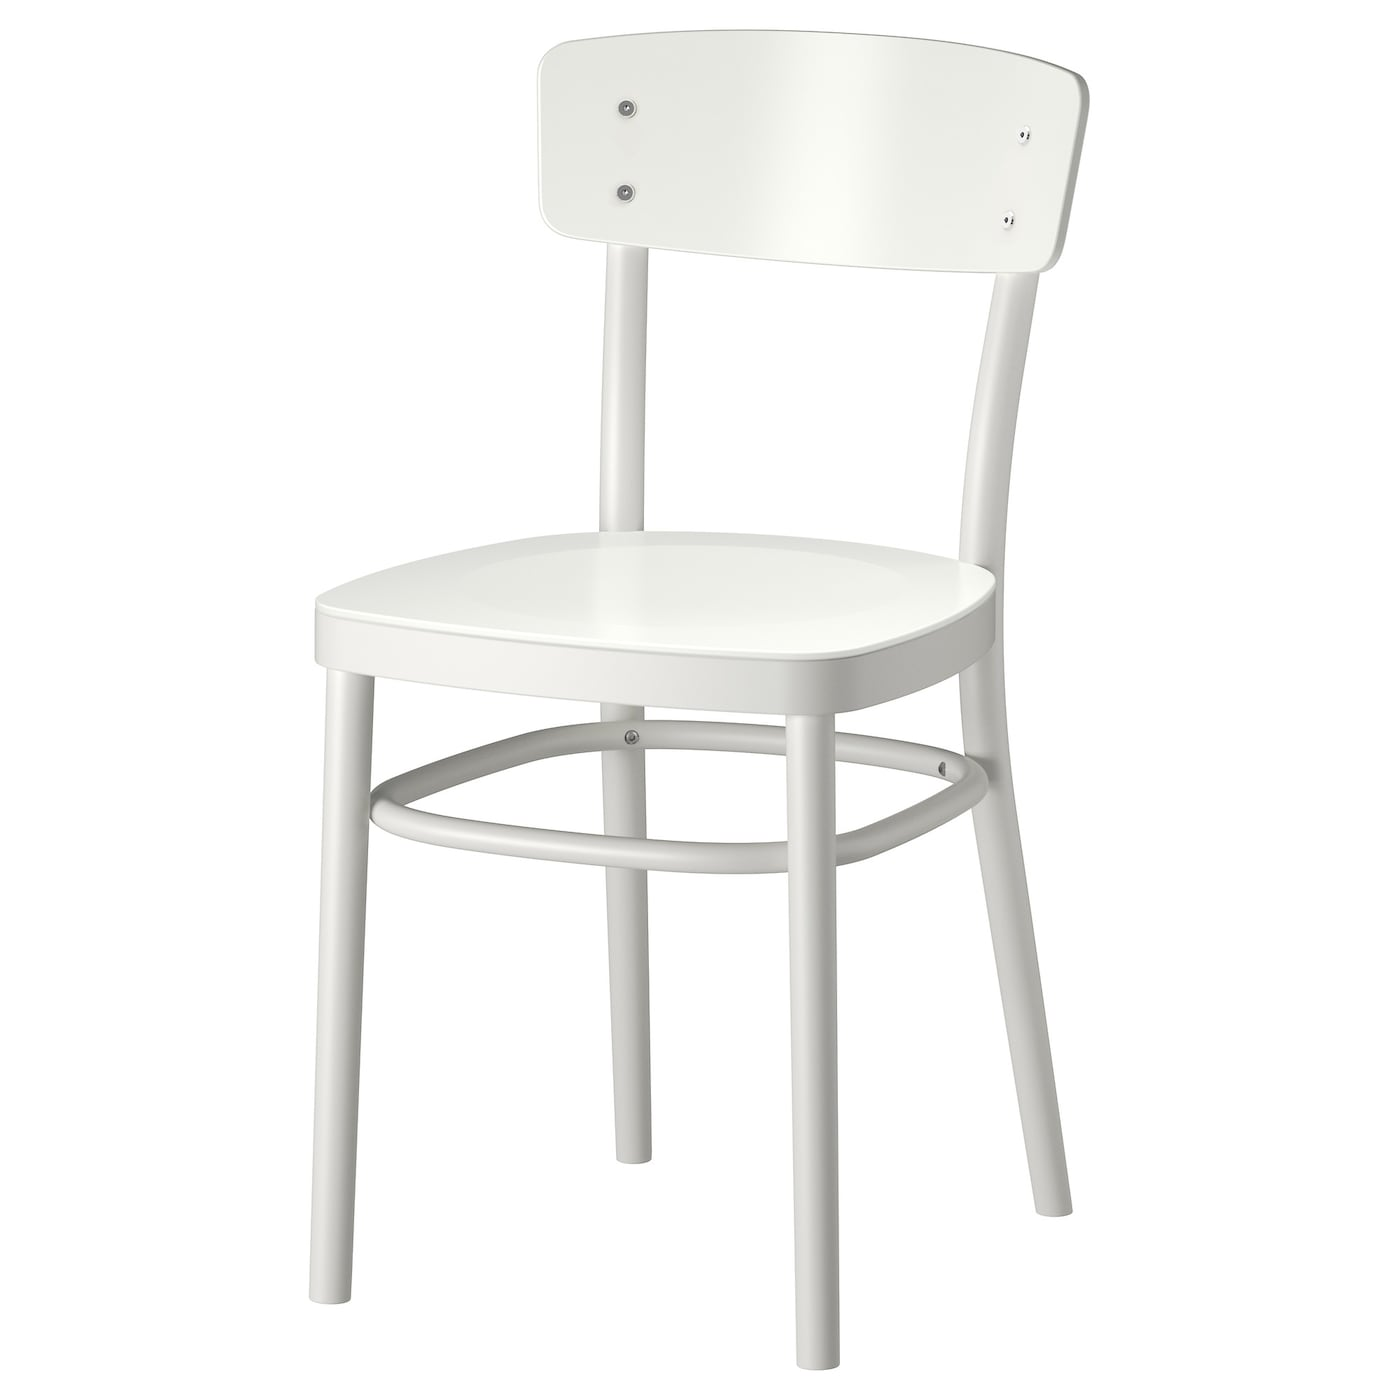 Dining chairs kitchen chairs ikea - Sillas de exterior ikea ...